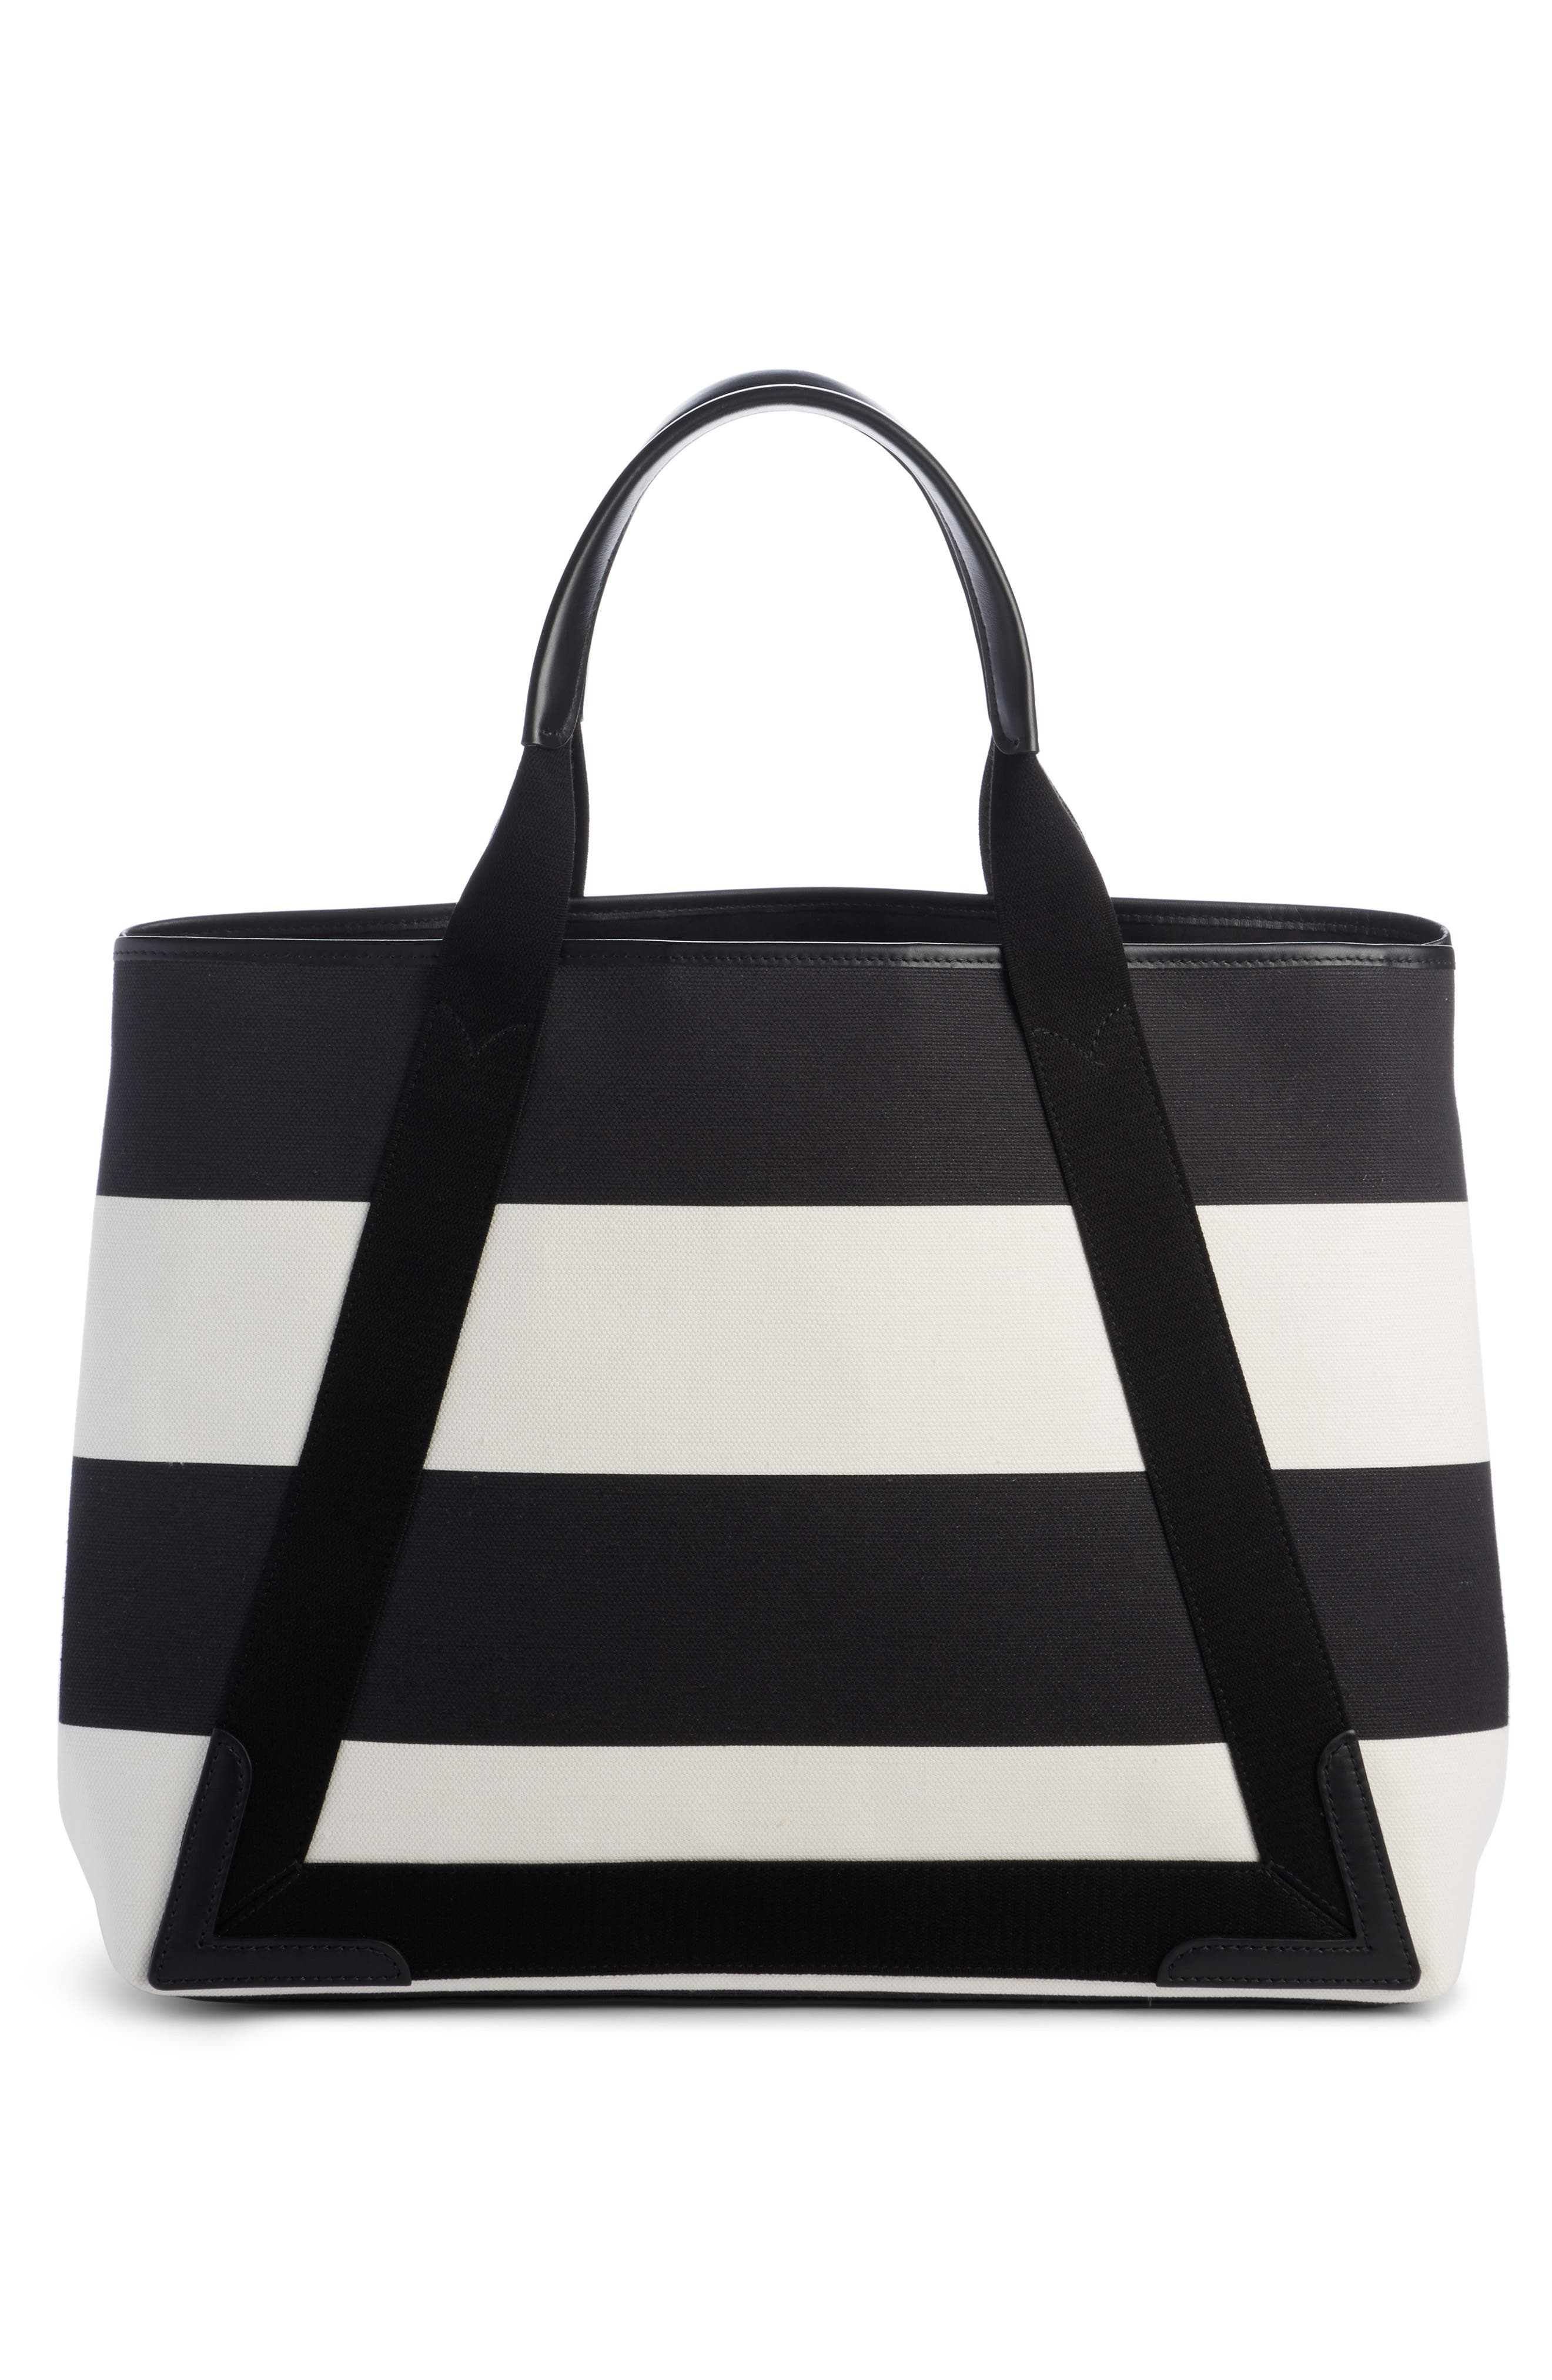 Medium Cabas Stripe Canvas Tote,                             Alternate thumbnail 2, color,                             Noir/ Blanc/ Noir